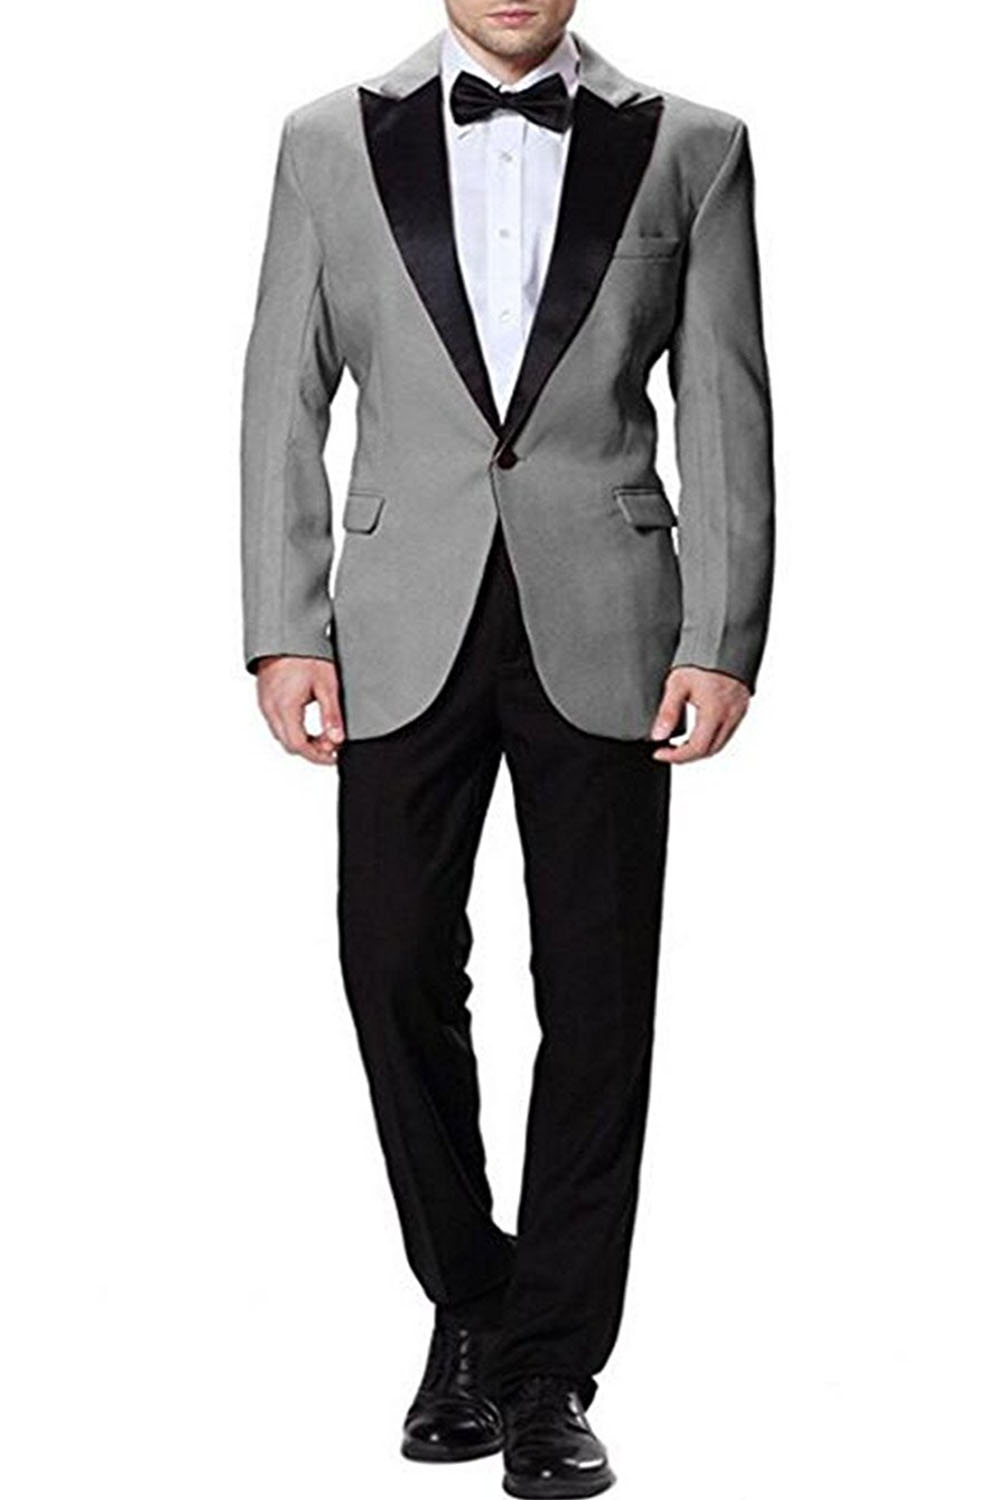 Men Suits Slim Fit Groom Wedding Suits Grey with Black Pants  2 pieces Slim Fit Terno Masculino Custom Made